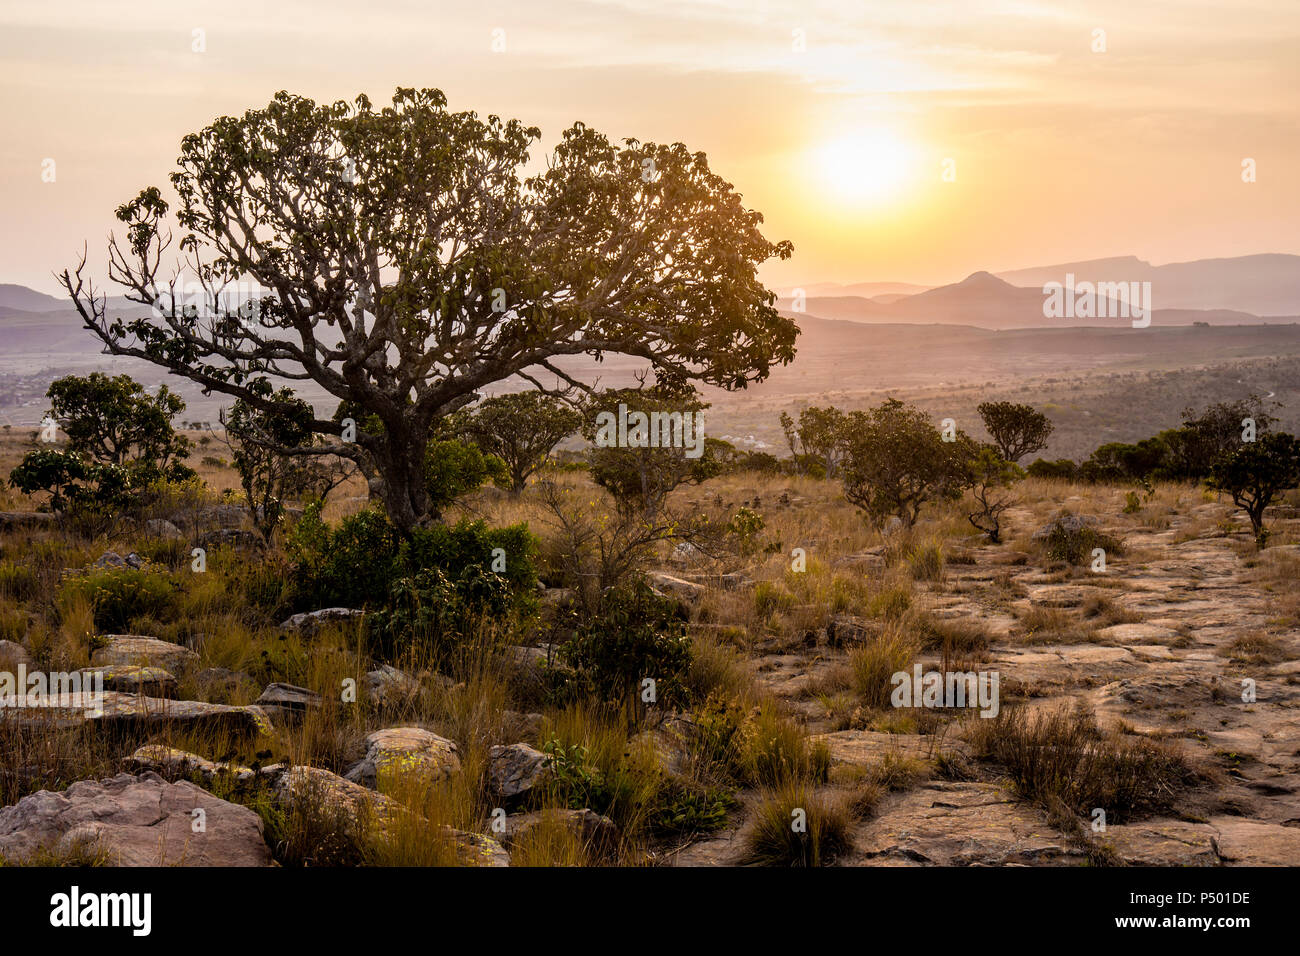 Africa, South Africa, Mpumalanga, Panorama Route, Blyde River Canyon Nature Reserve at sunset - Stock Image